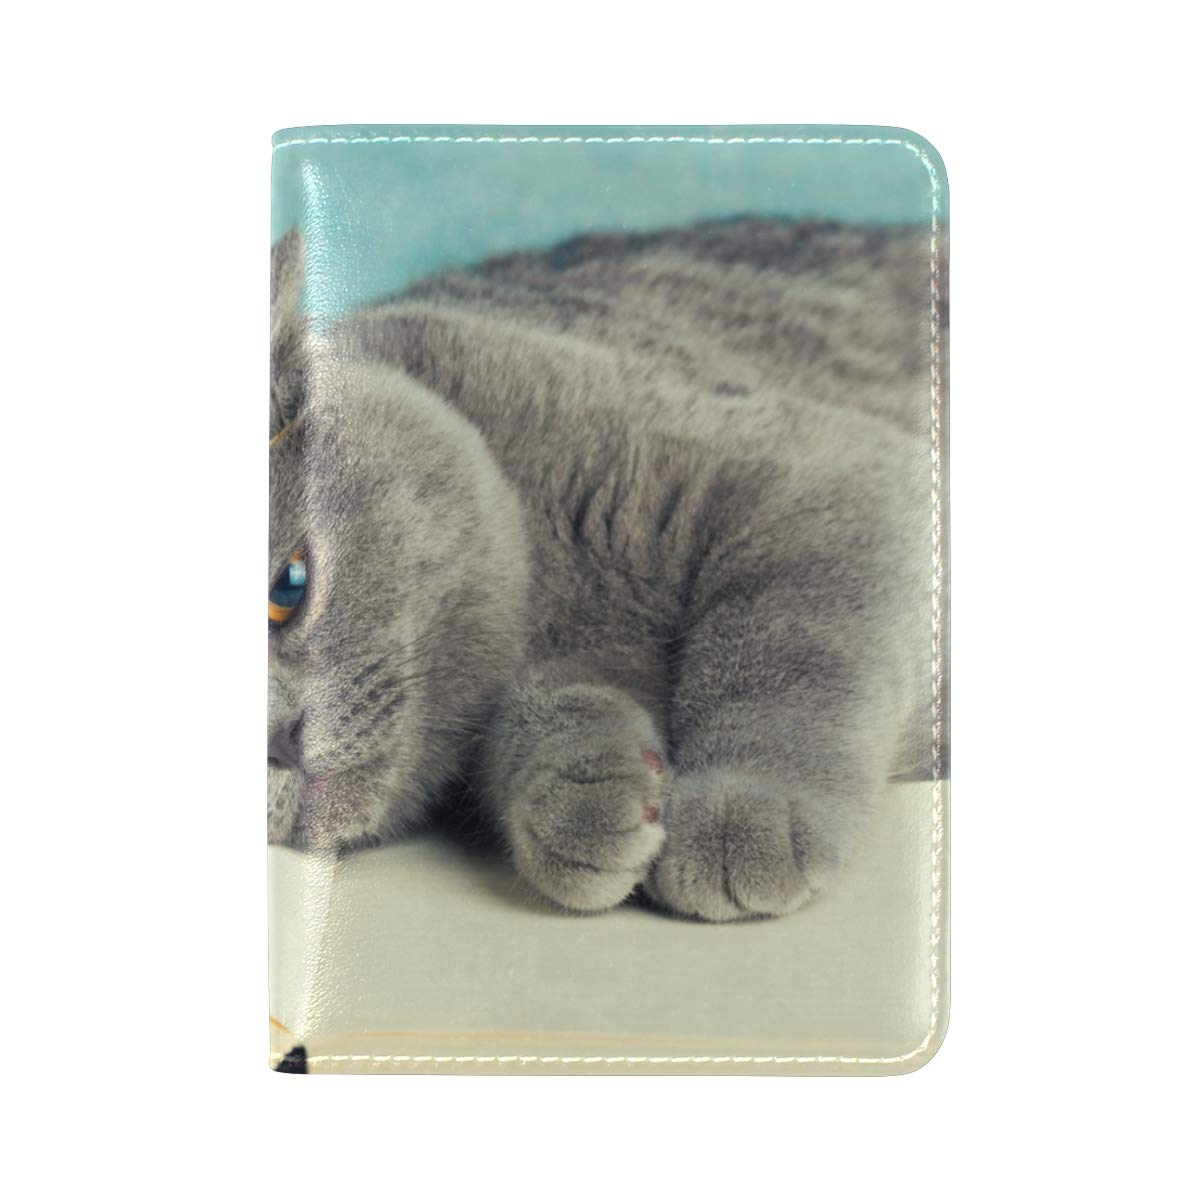 Cute Cat Lying On The Book One Pocket Leather Passport Holder Cover Case Protector for Men Women Travel